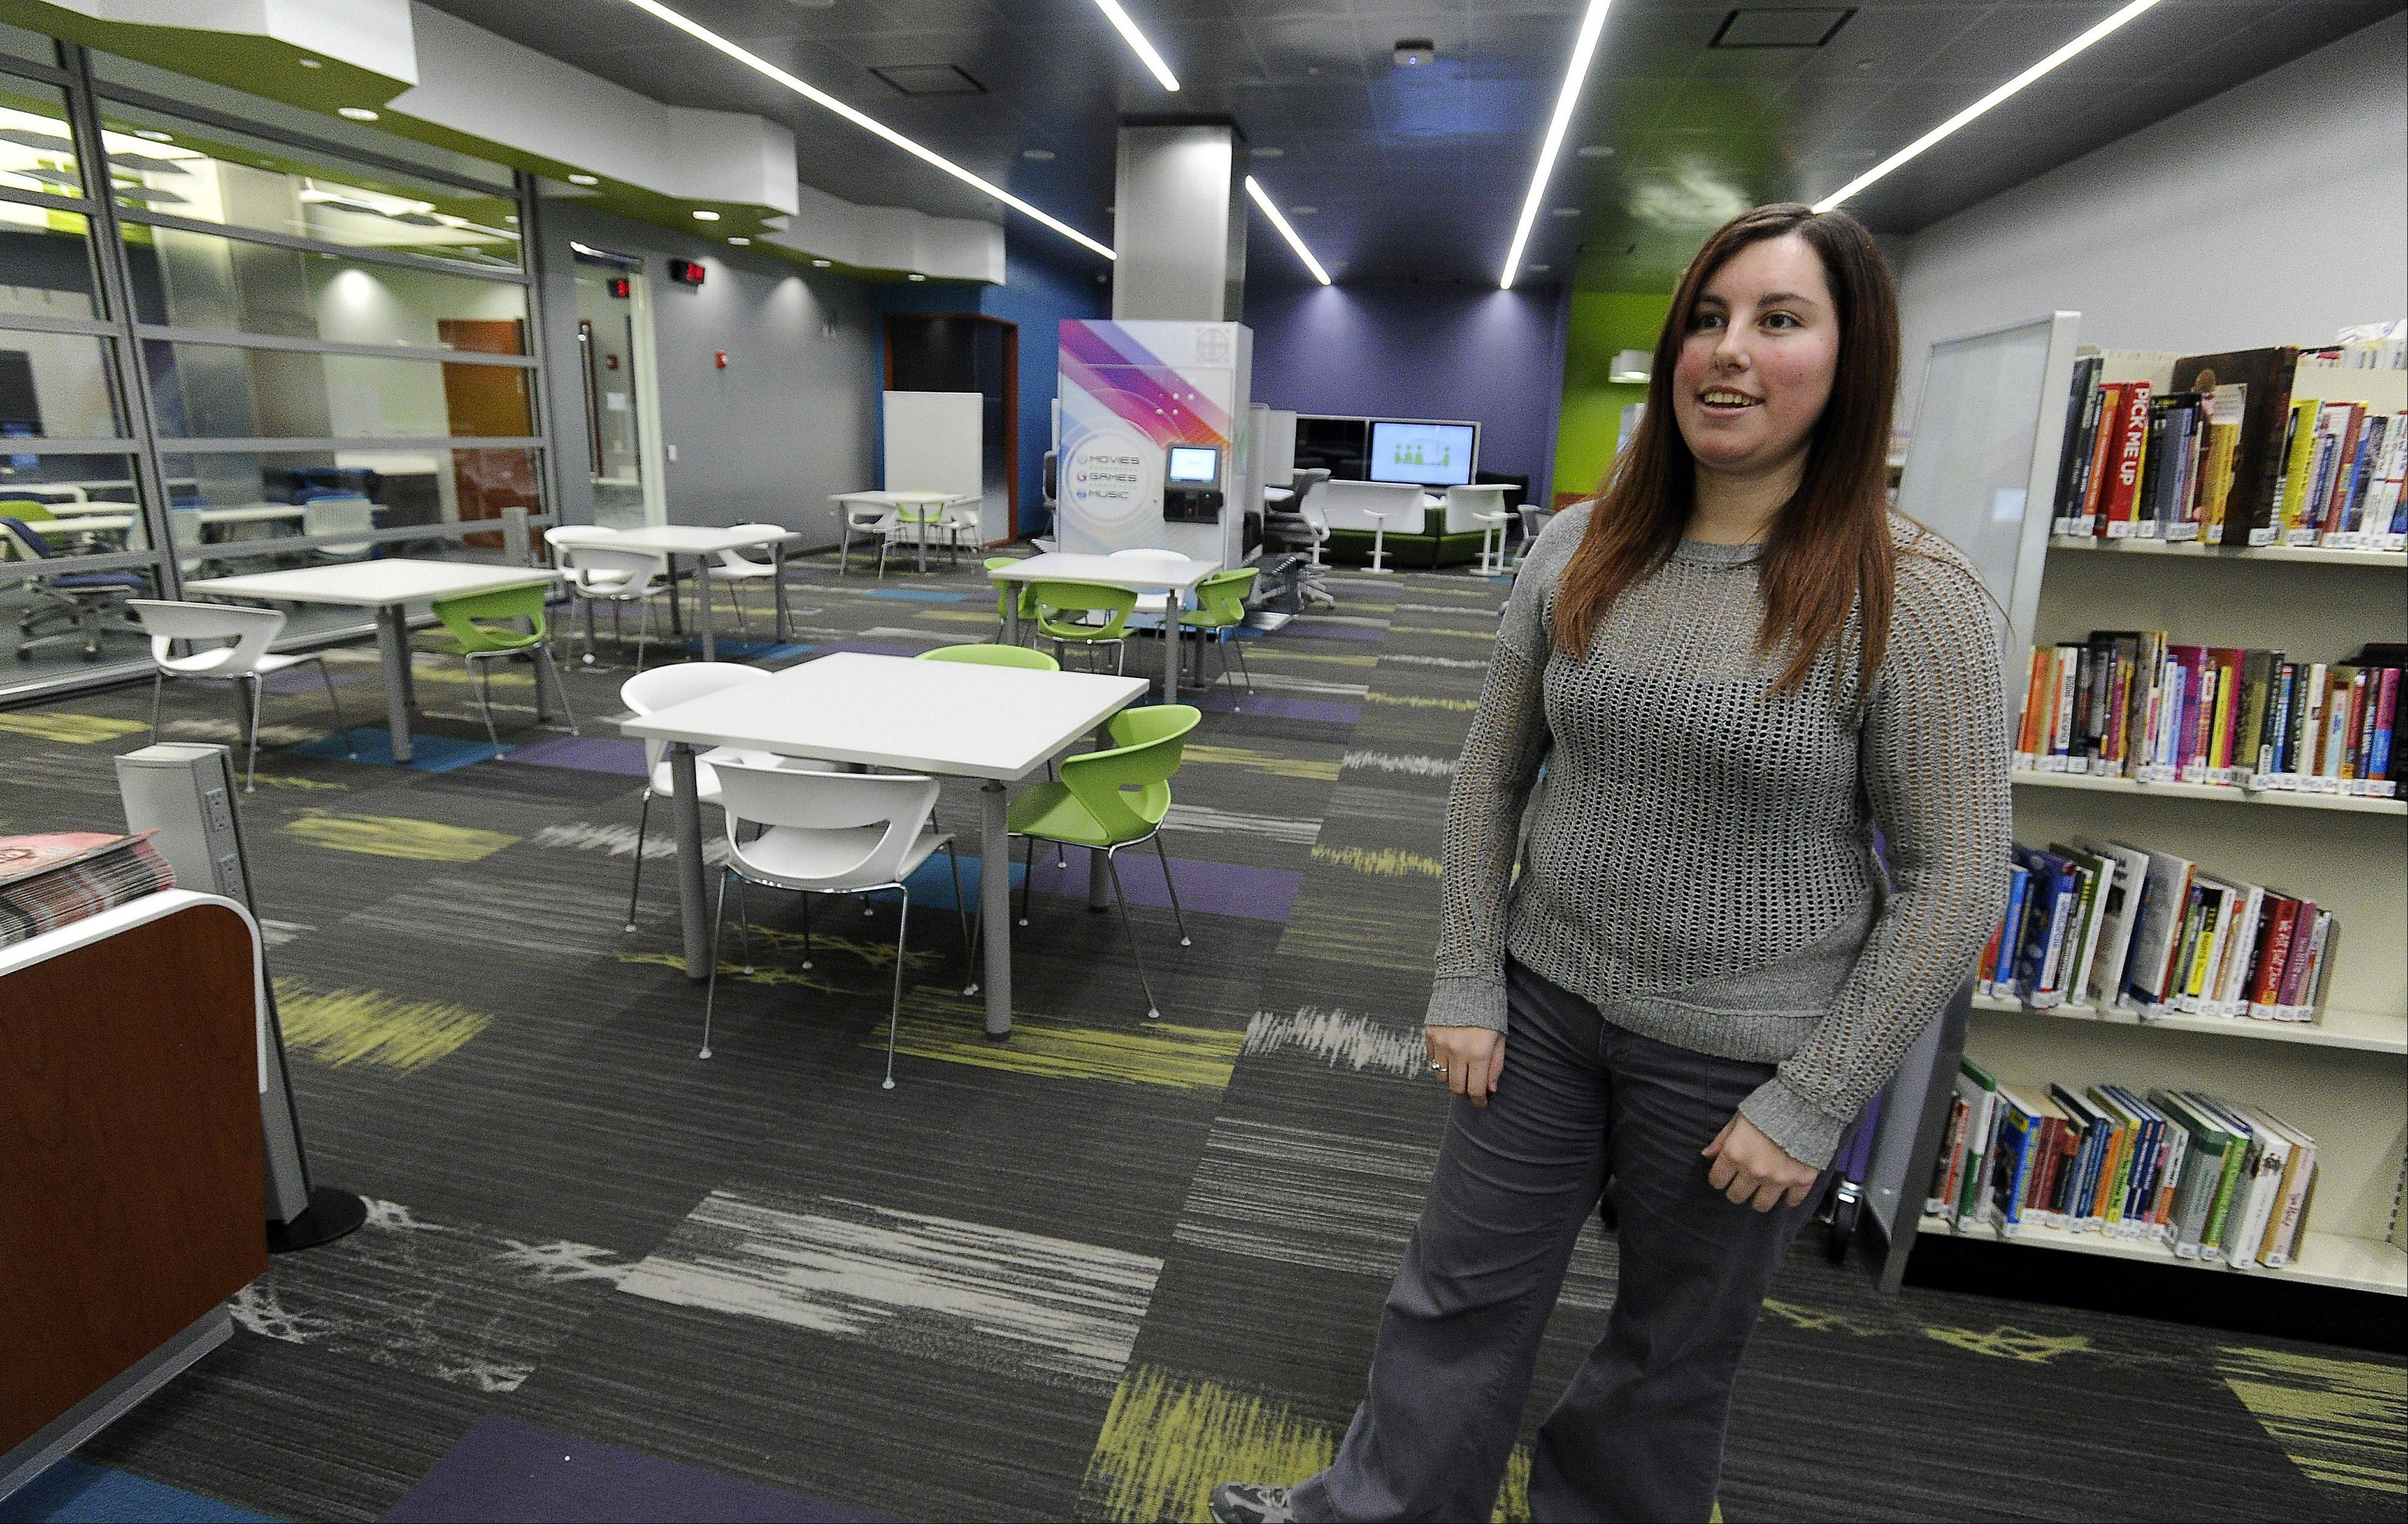 Katie LaMantia, teen librarian, shows off the new teen center at the Schaumburg Township District Library which is open for teens up to 19 for computer use or movie production.